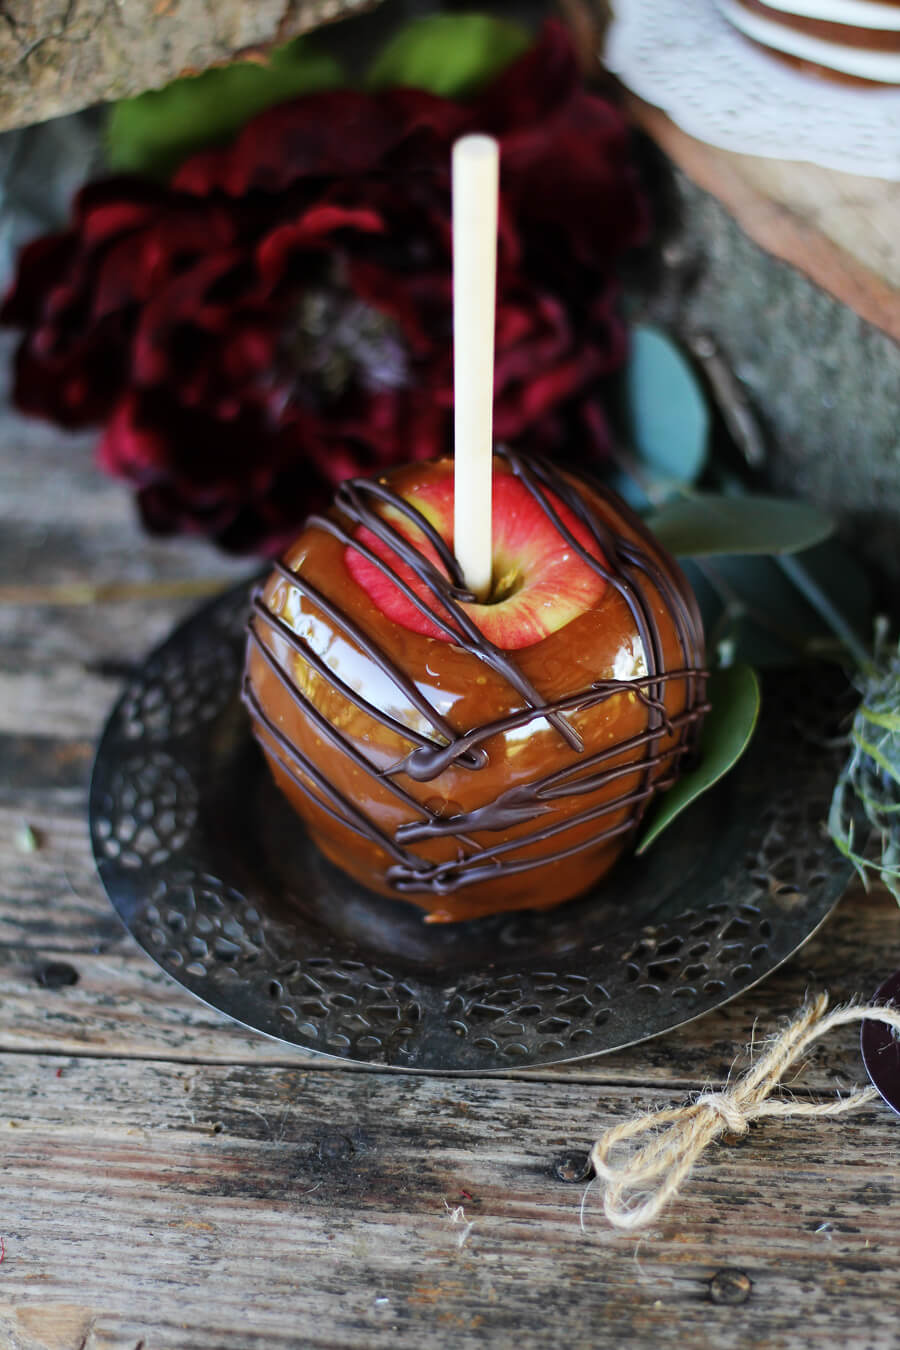 A caramel-coated apple drizzled with dark chocolate, served on a vintage silver tray with ruby red flowers in the background